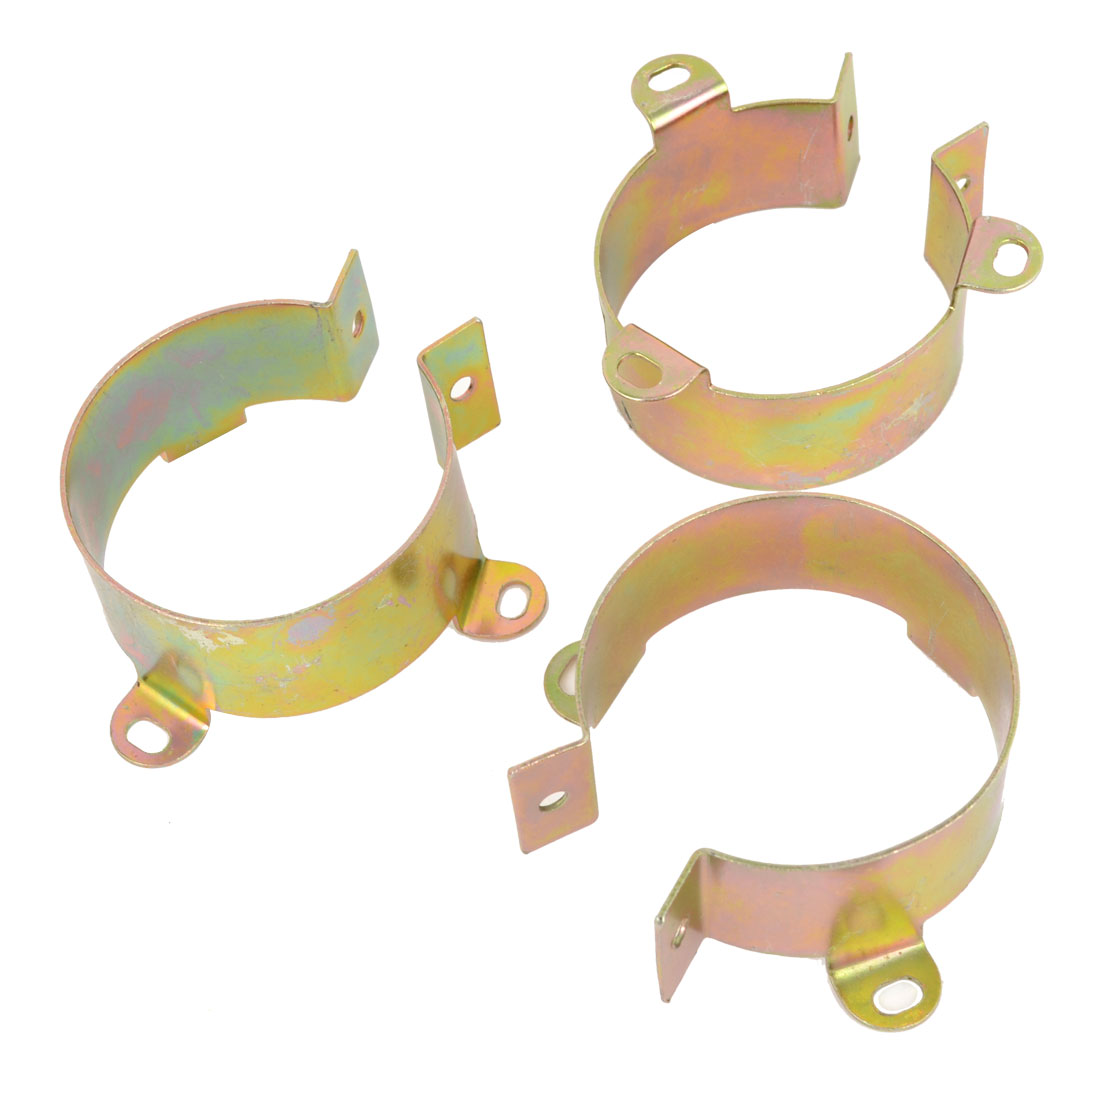 50mm-60mm Dia Exhaust Pipe Mounting Clamp for Drag Pipes Clamping 3PCS